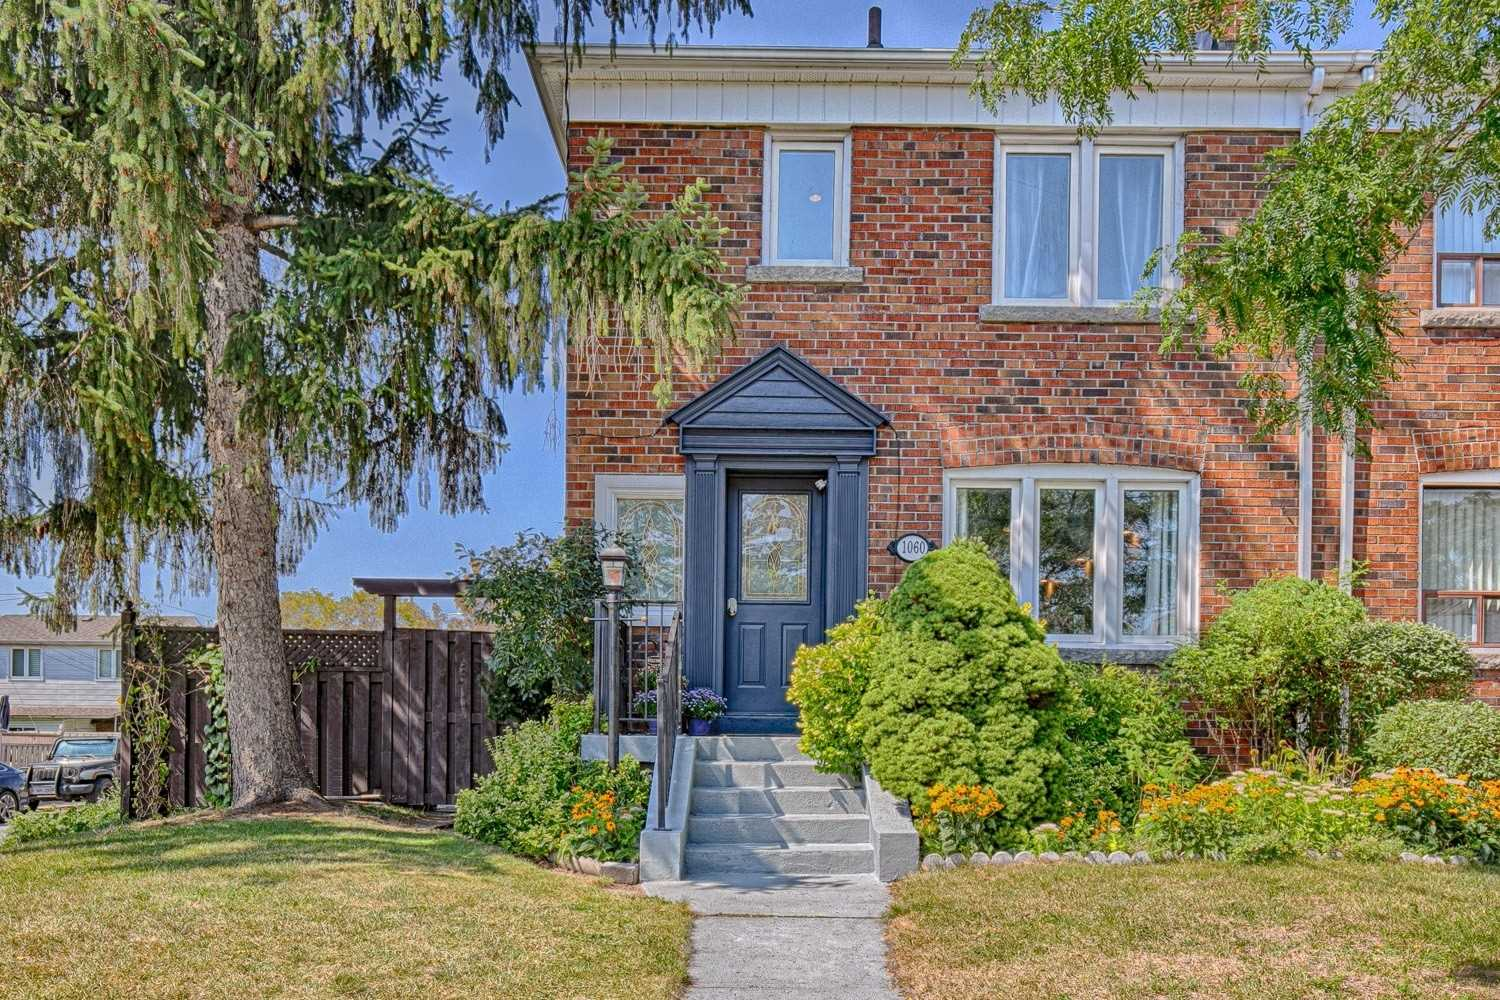 1060 Greenwood Ave, Toronto, Ontario M4J4E3, 4 Bedrooms Bedrooms, 7 Rooms Rooms,2 BathroomsBathrooms,Semi-detached,For Sale,Greenwood,E5359994